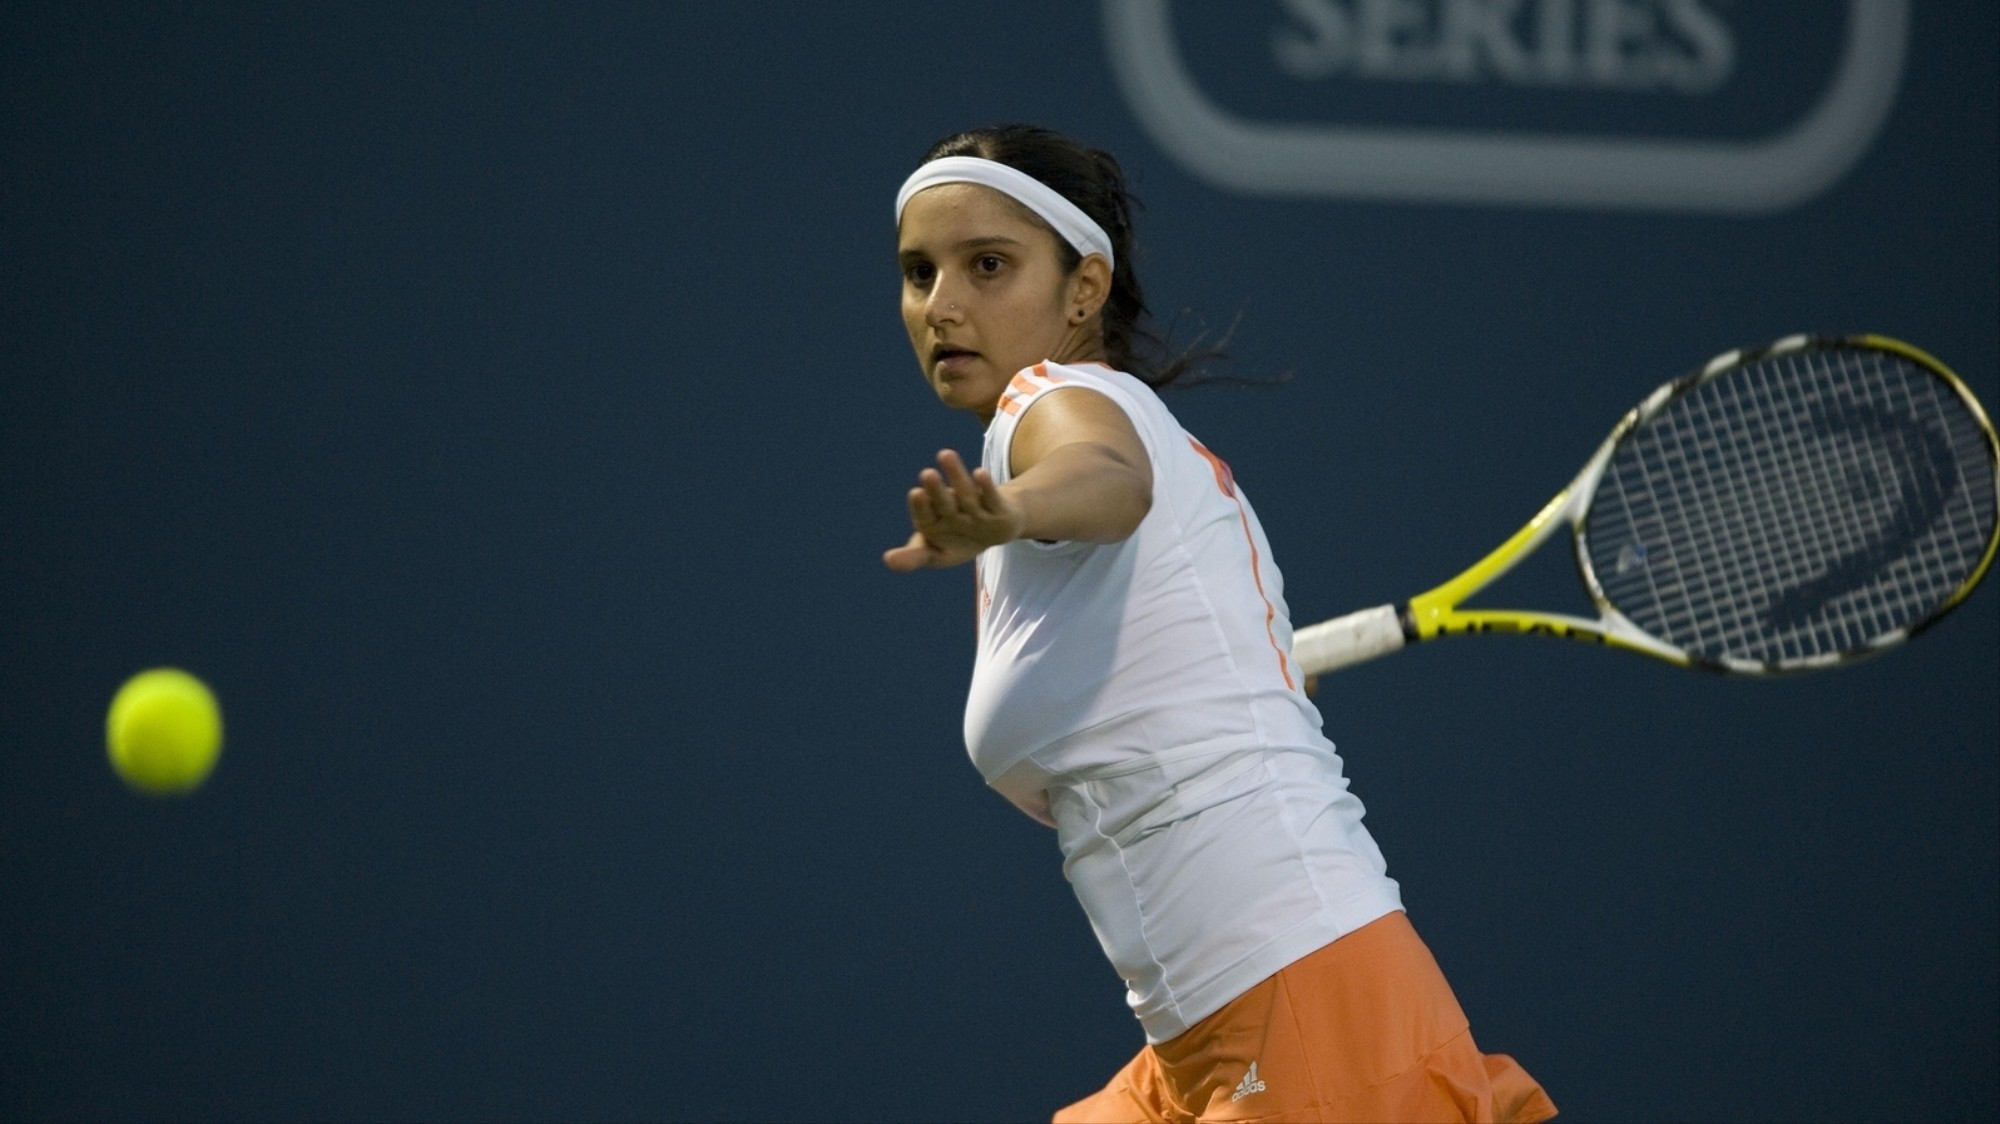 Fatwas, Feminism, and Forehands: The Life of Indian Tennis Superstar